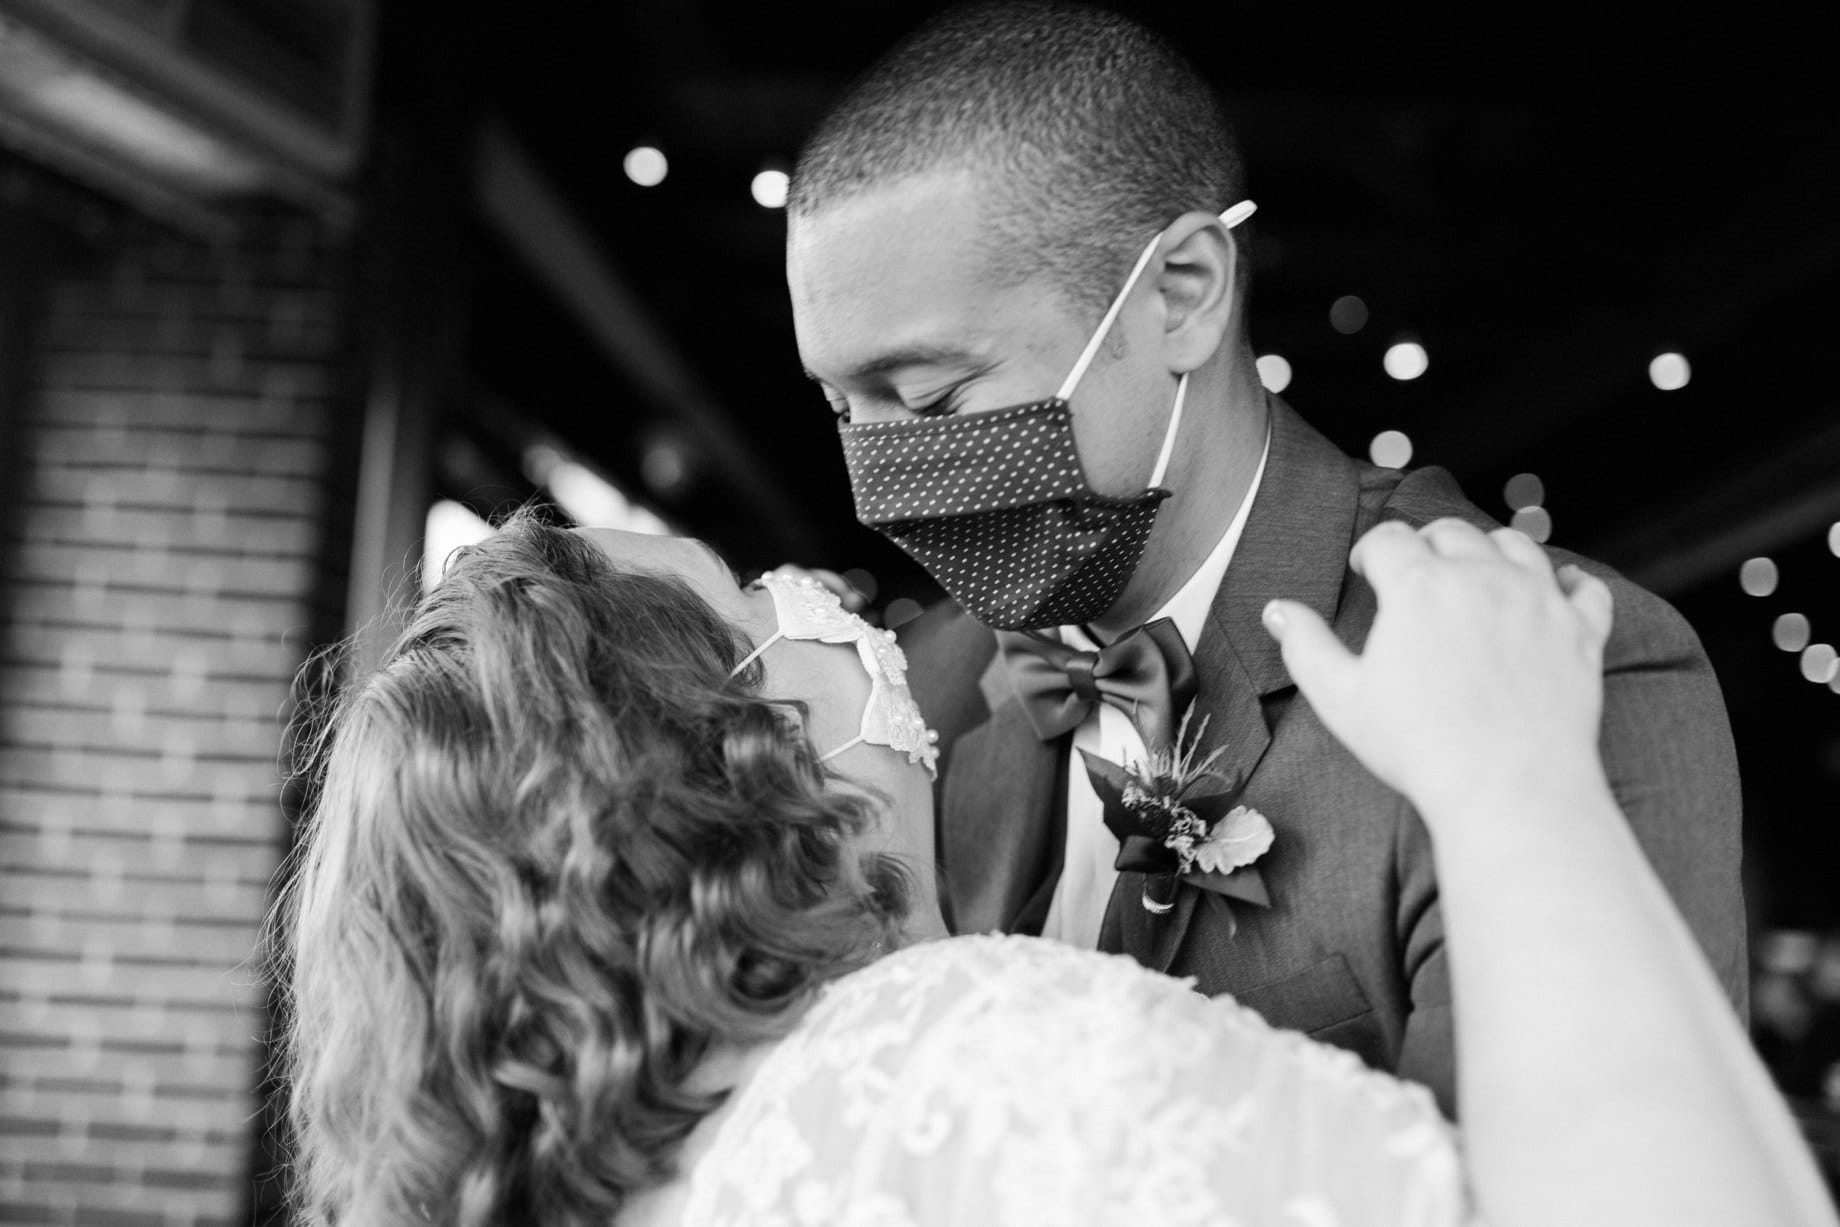 bride and groom dance with masks on during their covid wedding